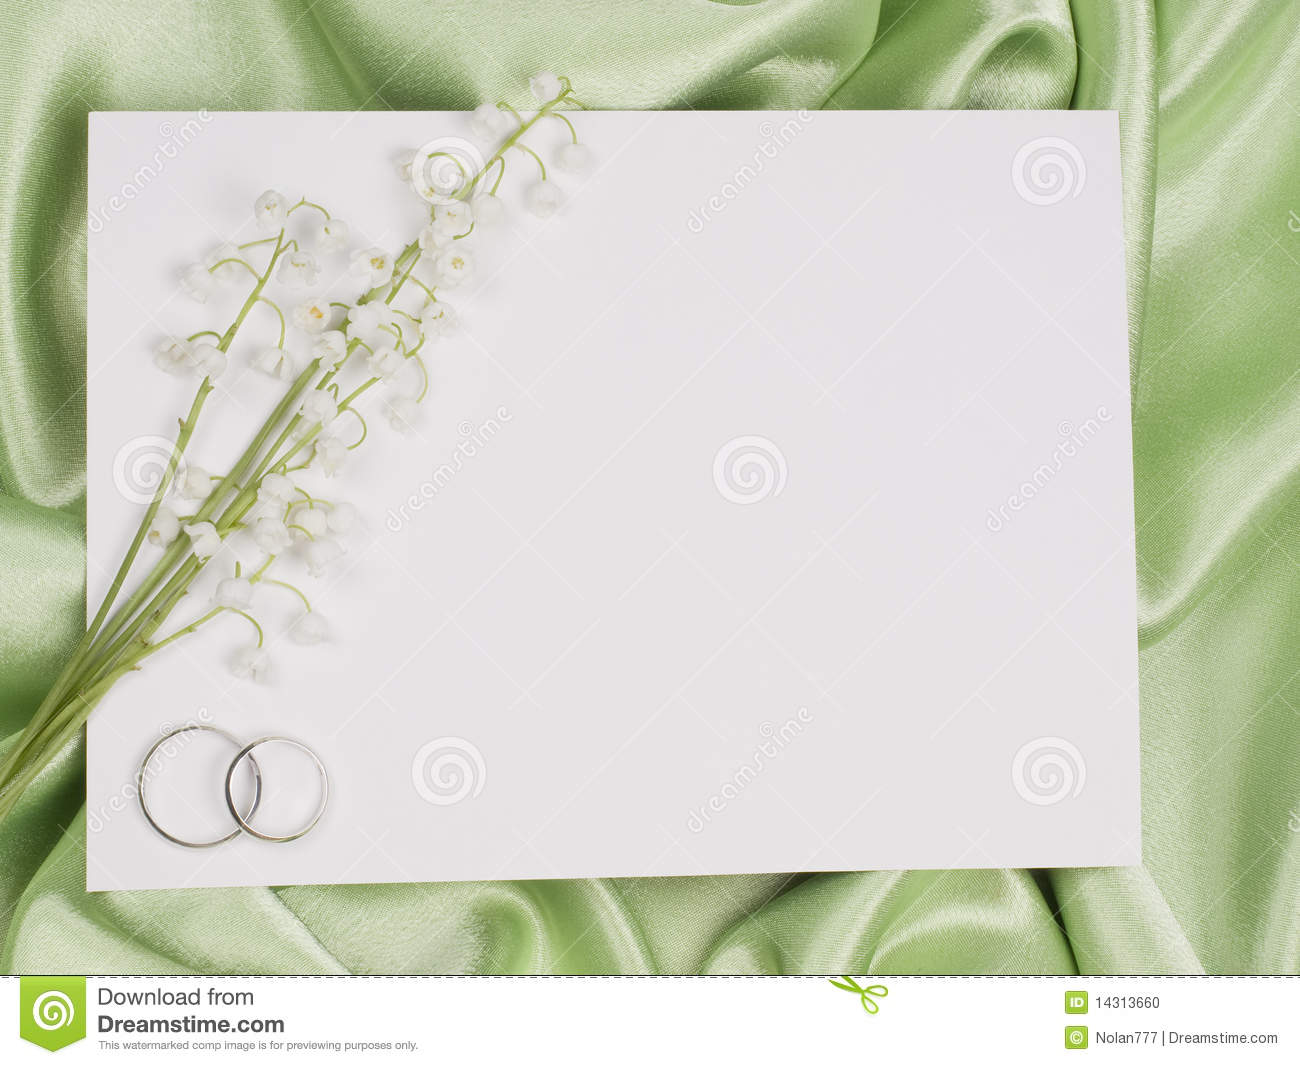 Wedding Rings, Card And Lily Of The Valley Stock Photo - Image of ...